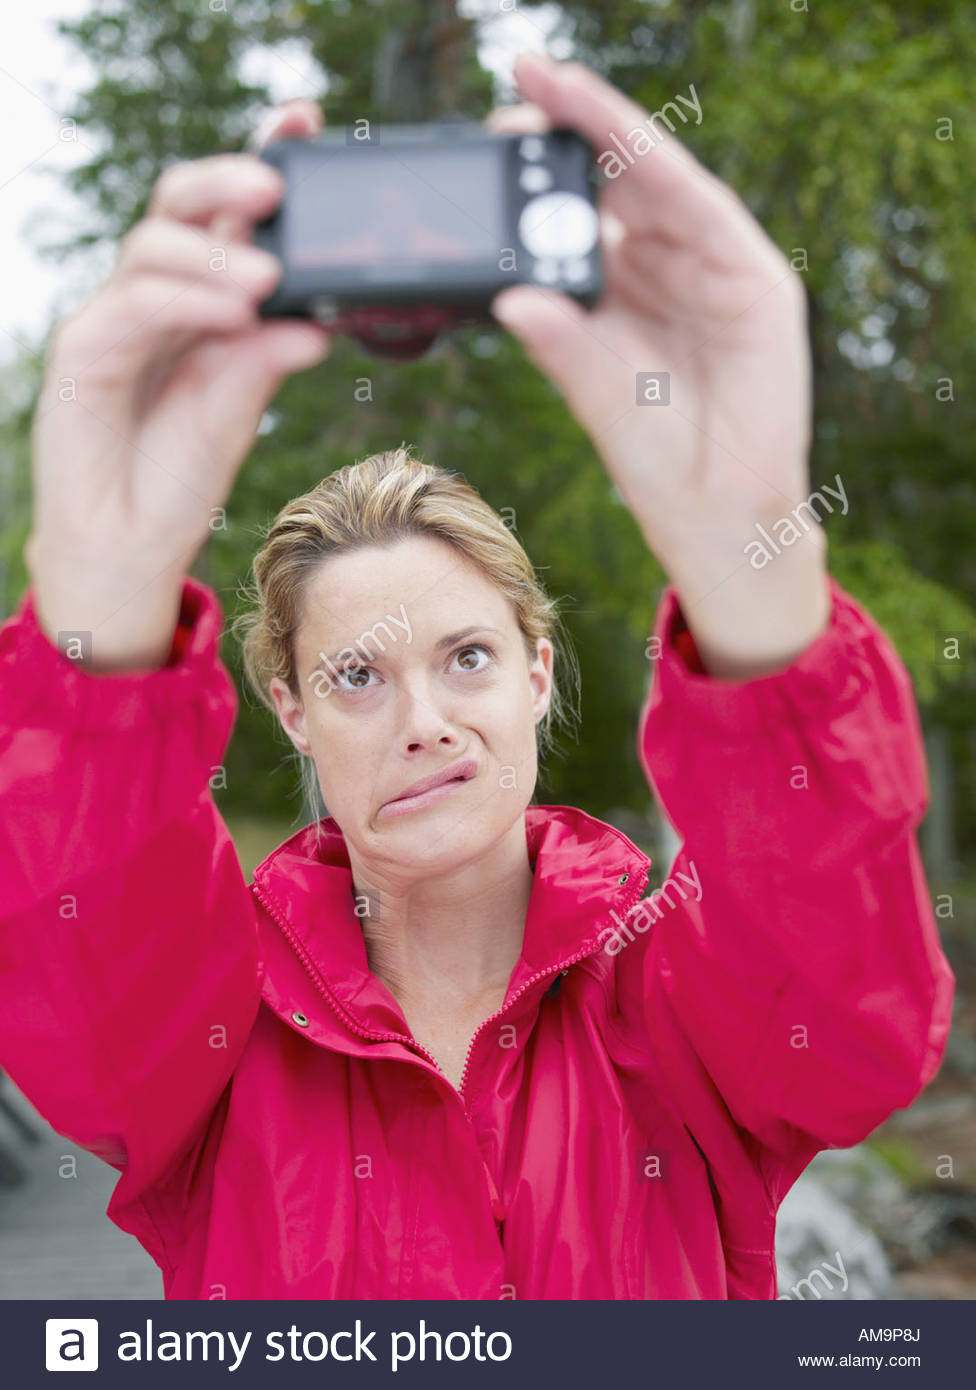 Woman taking self-portrait outdoors. - Stock Image